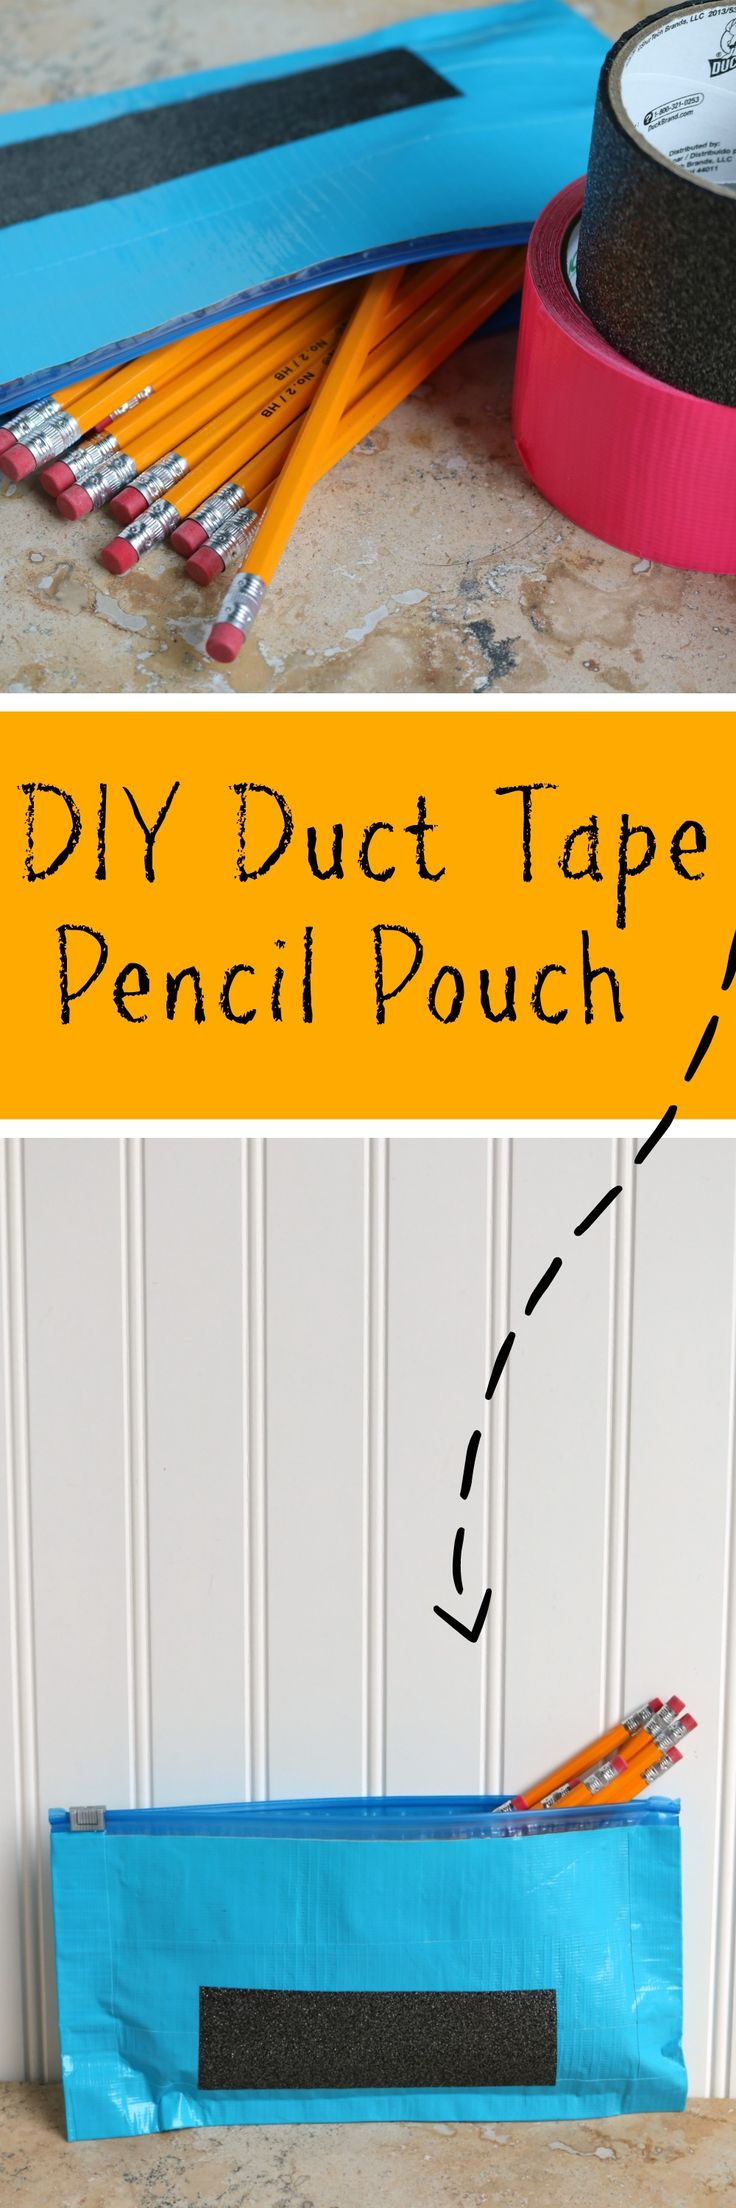 DIY Duct Tape Pencil Pouch for Back to School [AD] #DucktoSchool